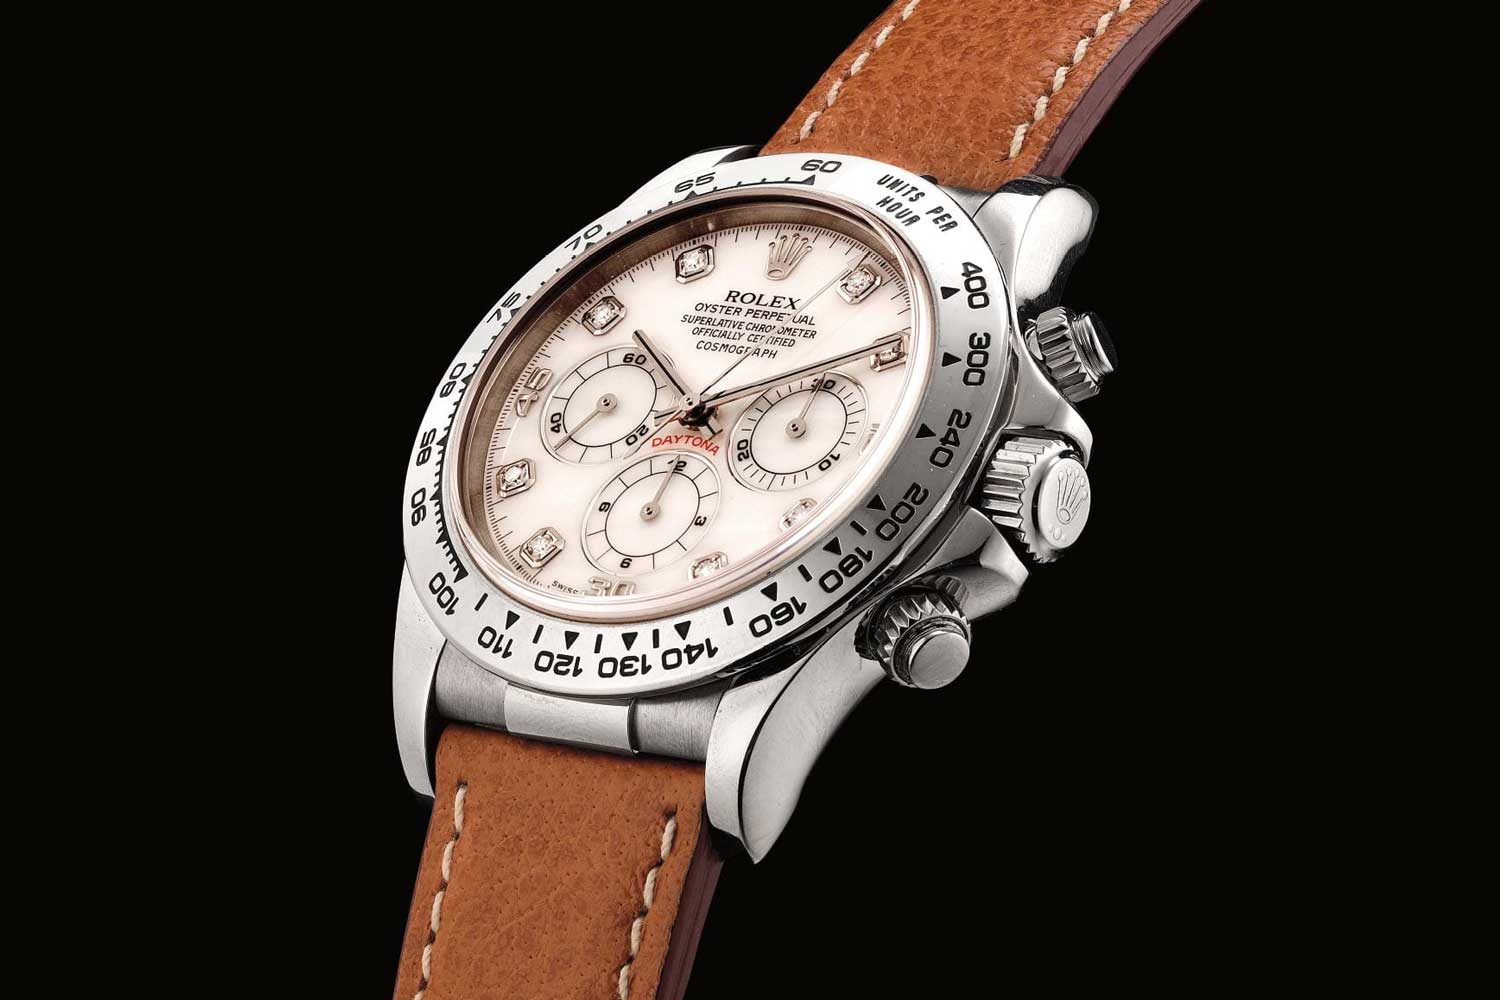 1998 Daytona ref. 16519, white gold and diamond-set chronograph wristwatch with mother-of-pearl dial (Image: phillips.com)